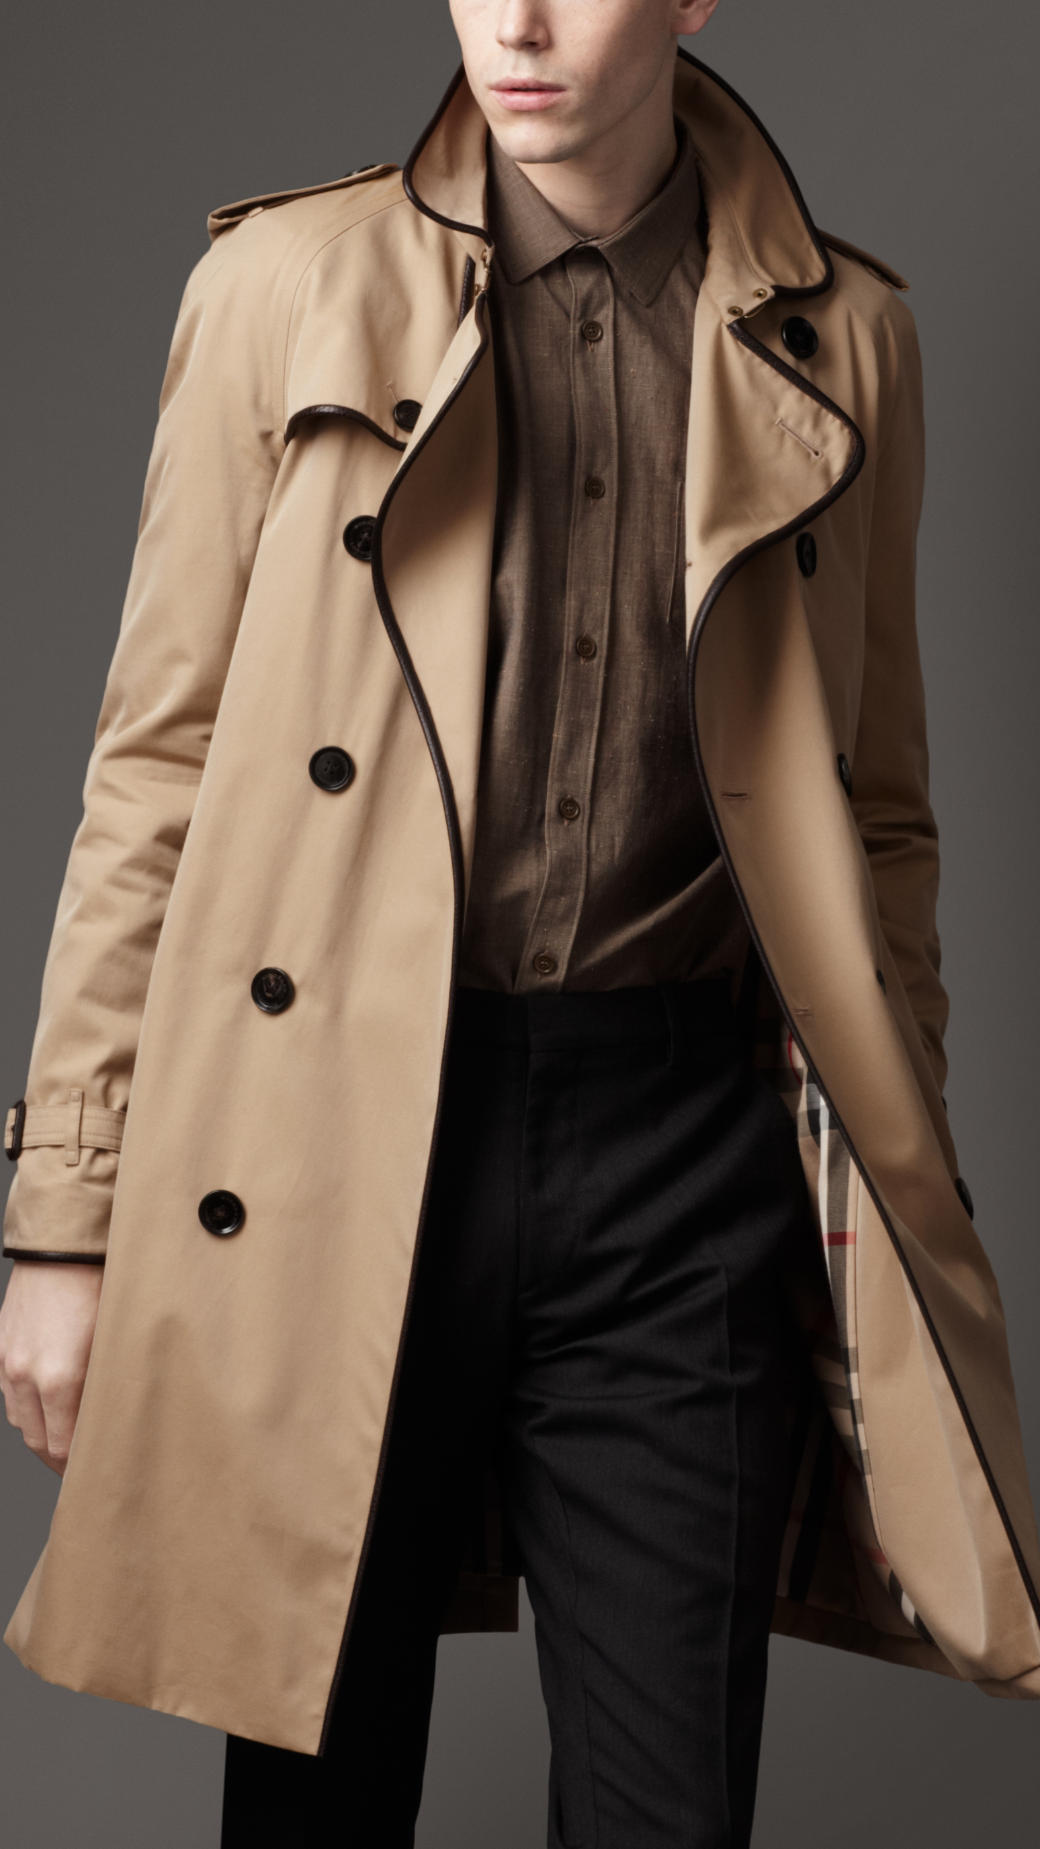 burberry leather bound trench coat in natural for men lyst. Black Bedroom Furniture Sets. Home Design Ideas